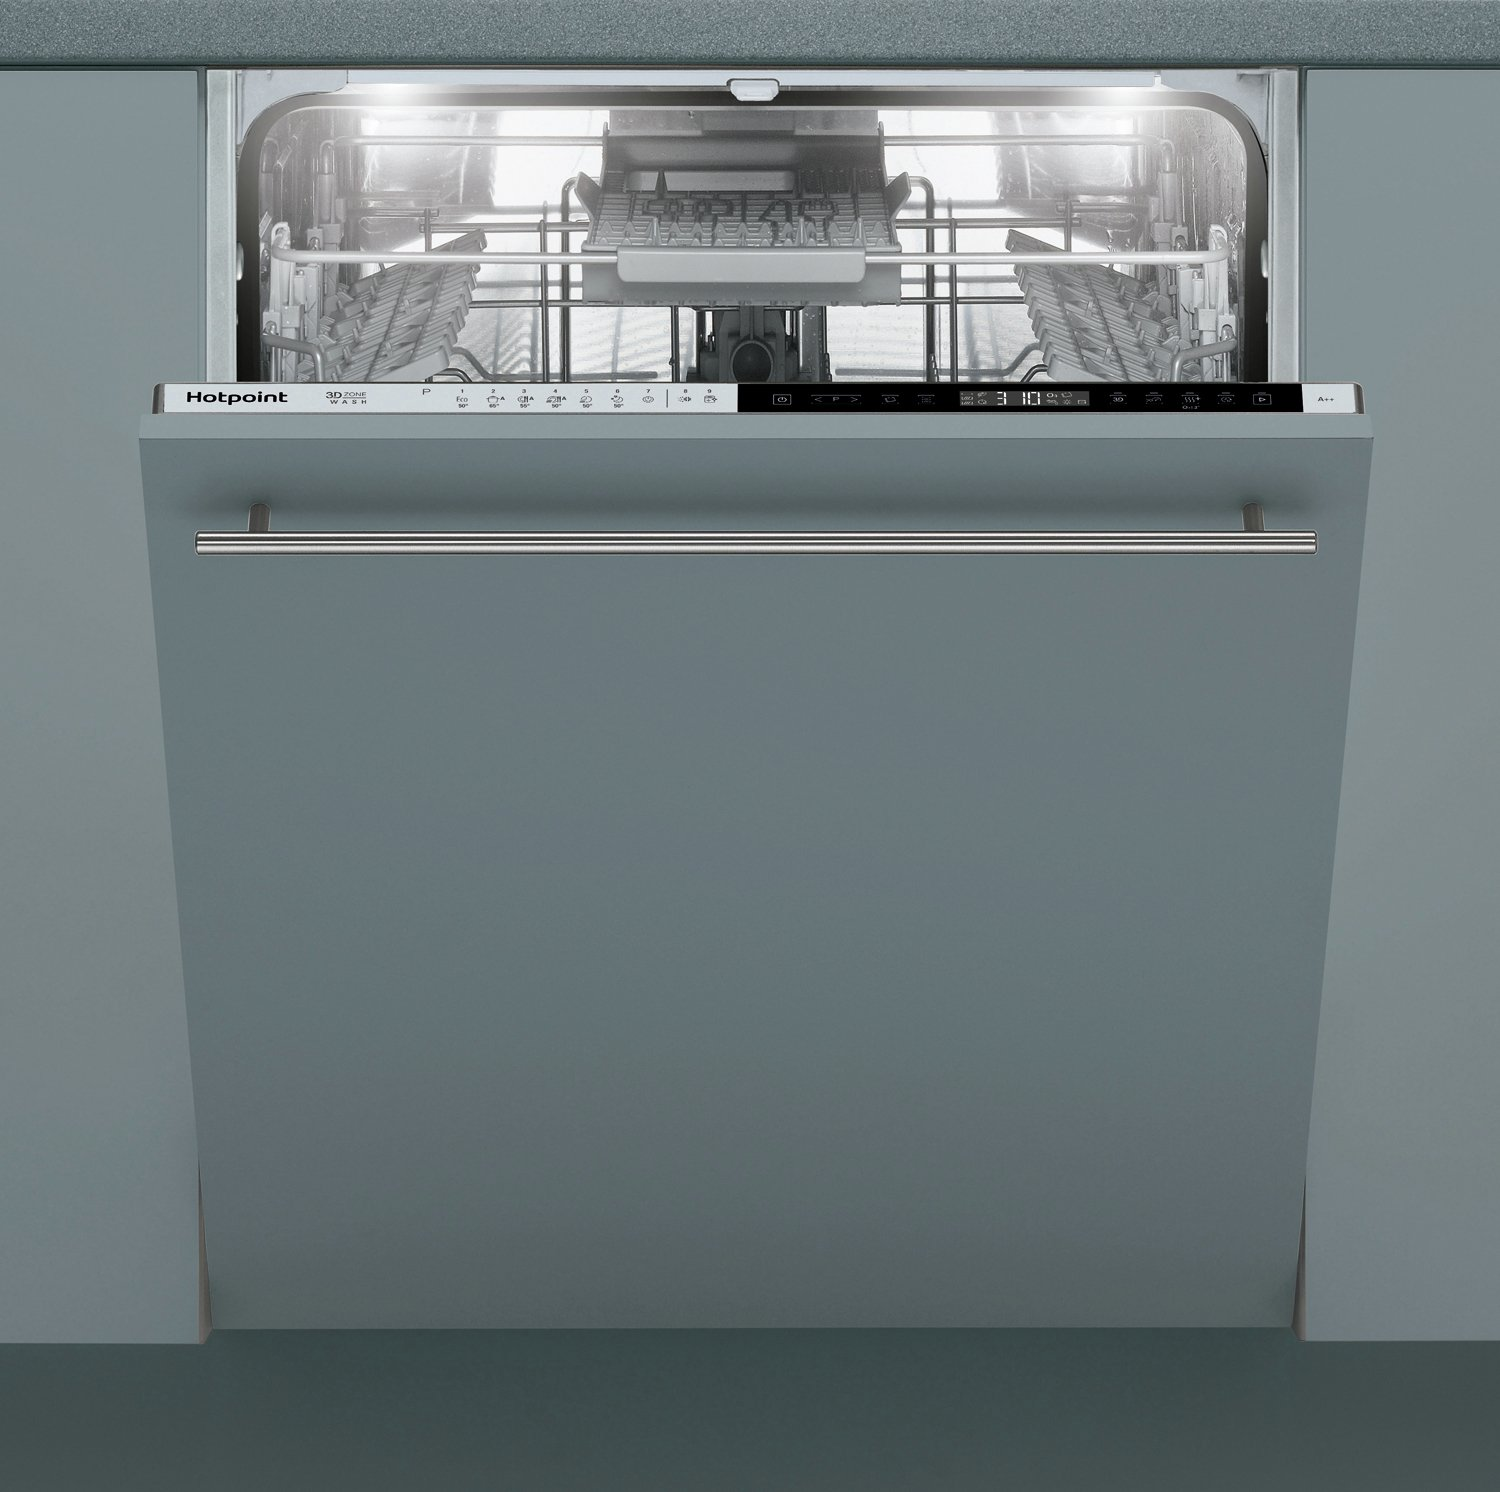 Hotpoint HIP4O22WGTCE Full Size Integrated Dishwasher review